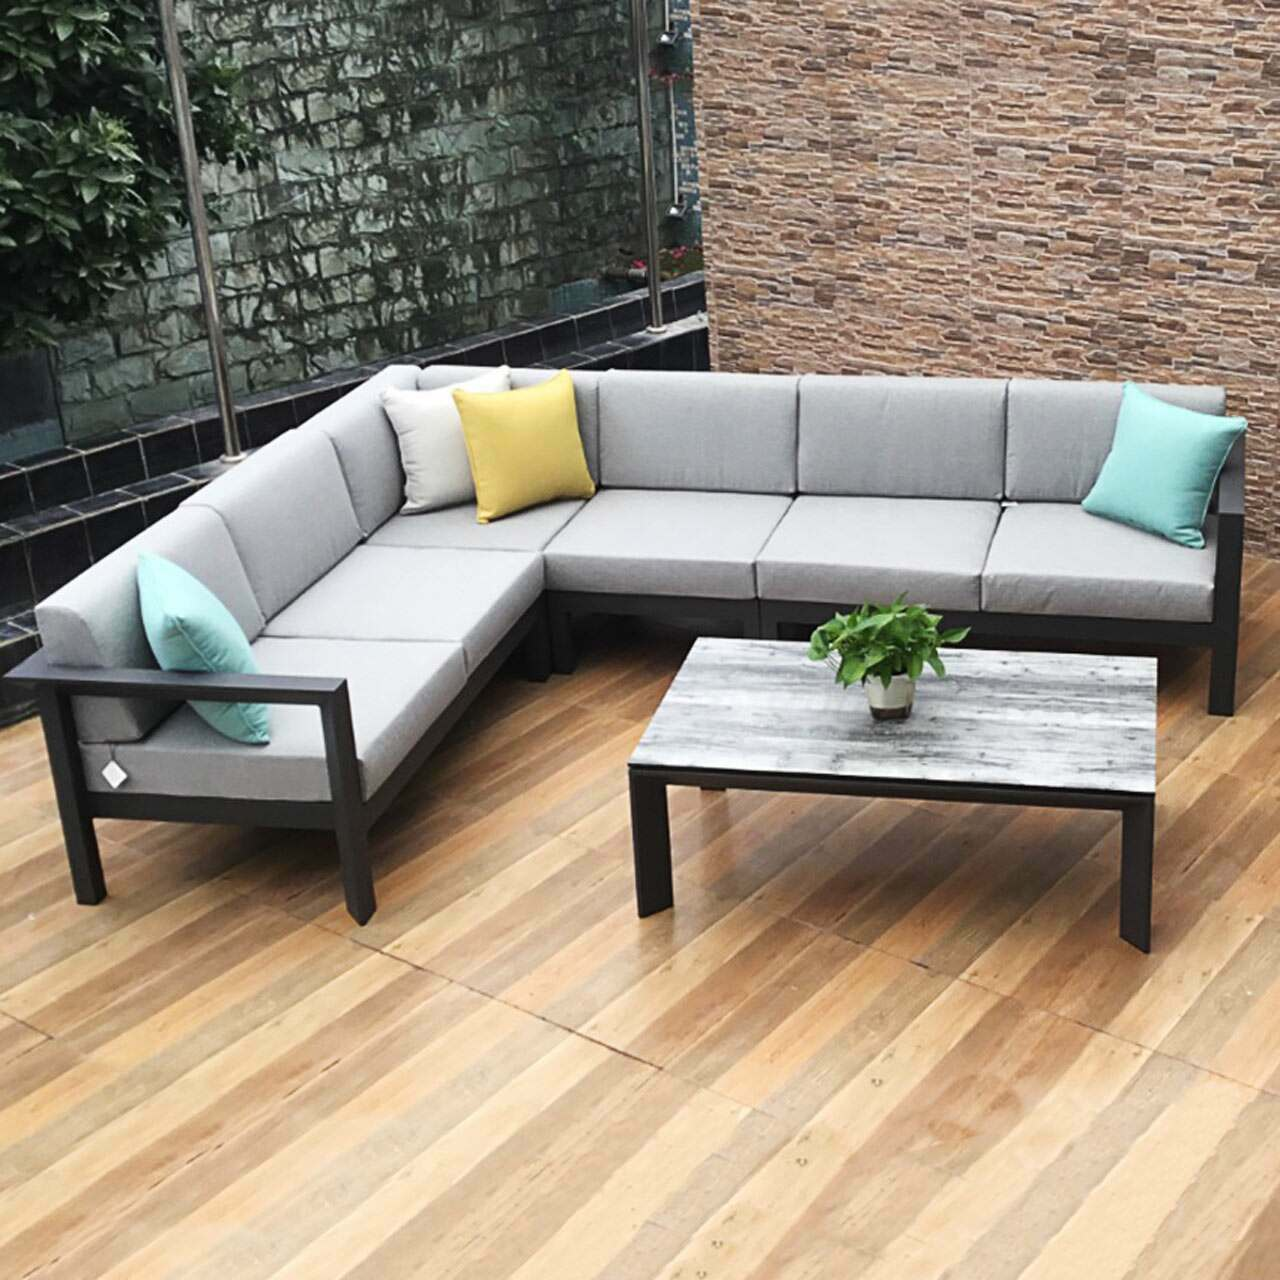 Premium Outdoor Tables & Chairs | Garden Corner Sofa